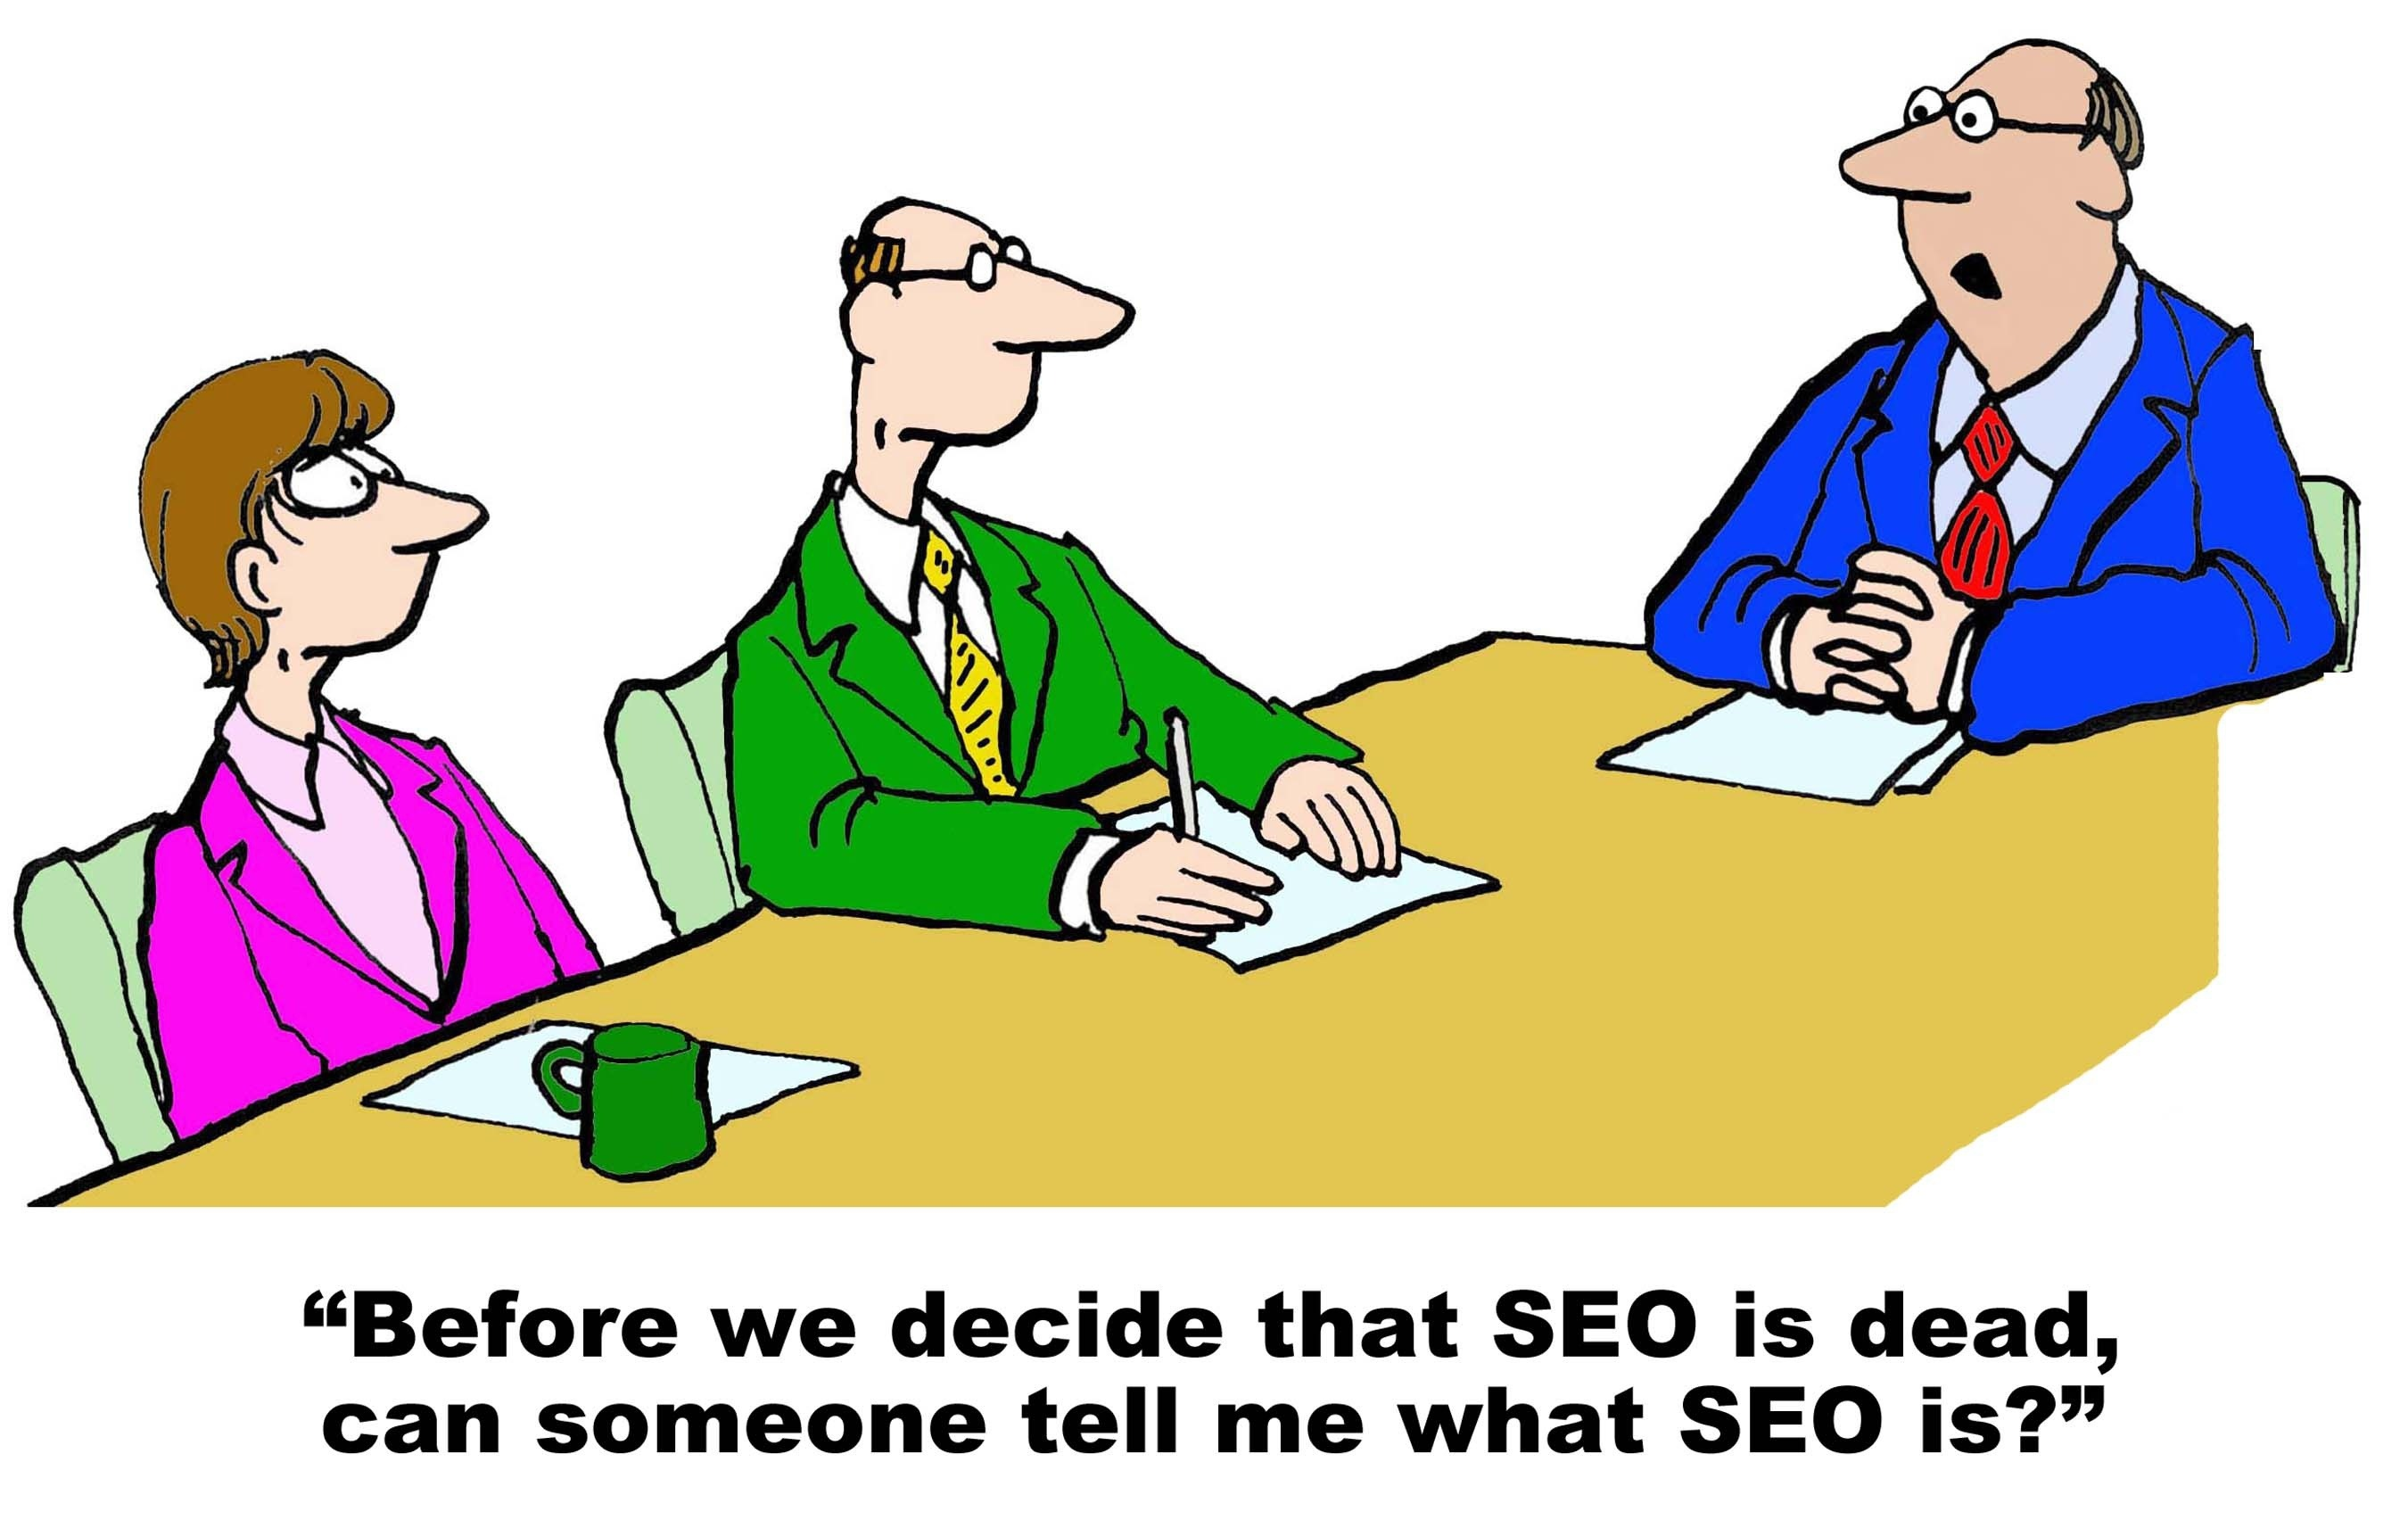 5 Key Ways To Prove You Are Missing Business Without SEO